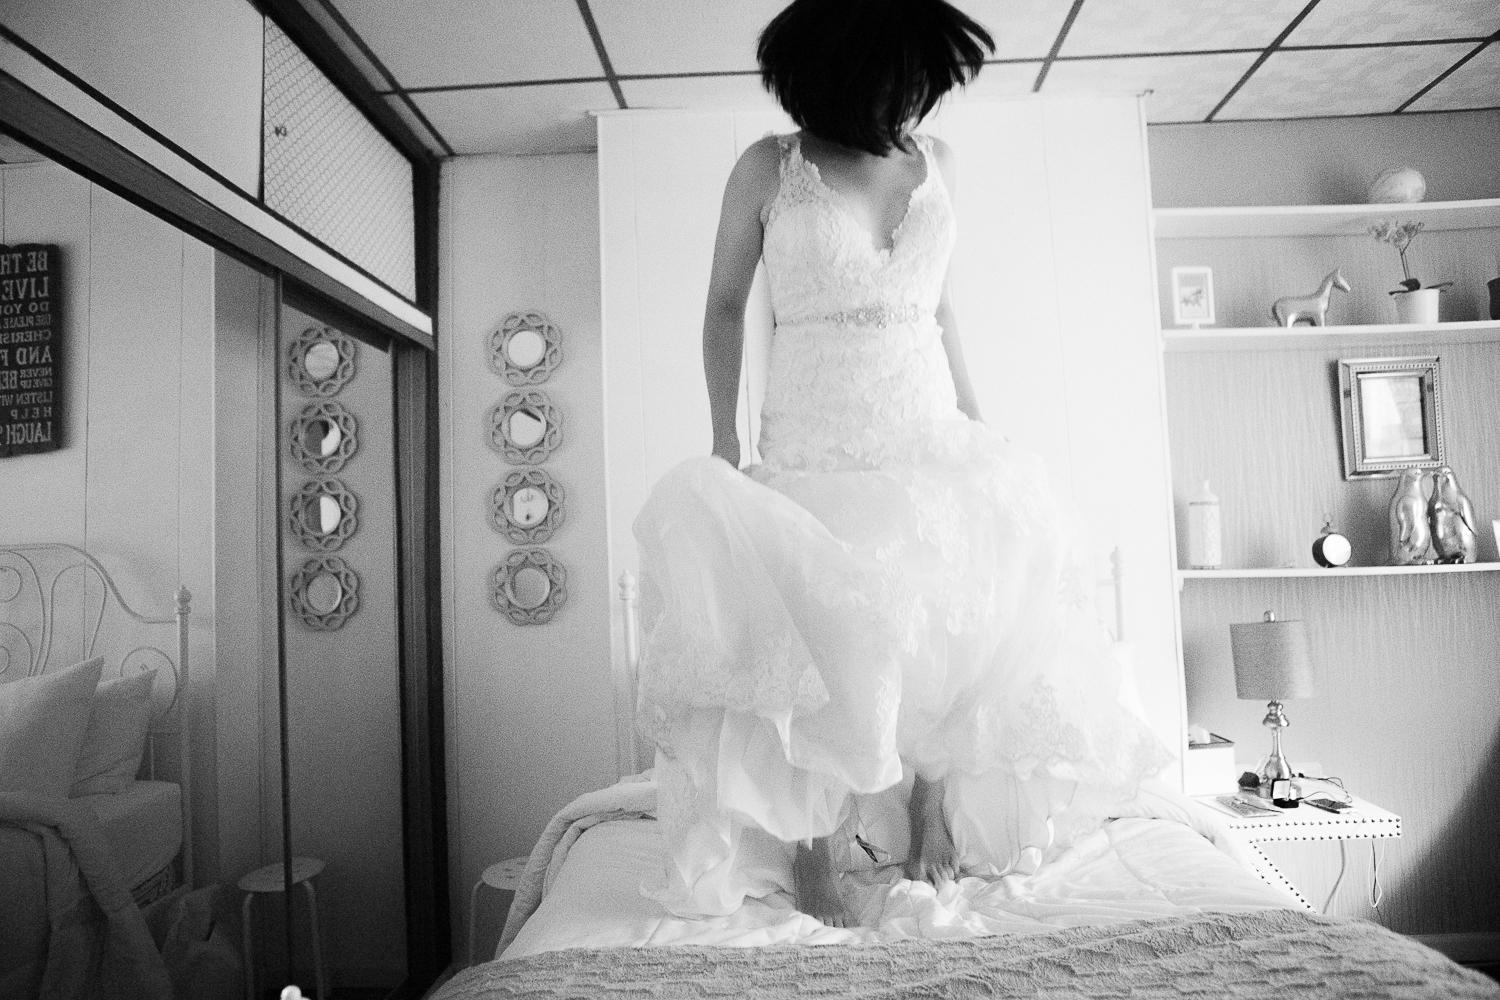 Bride jumping on the bed in her wedding gown.